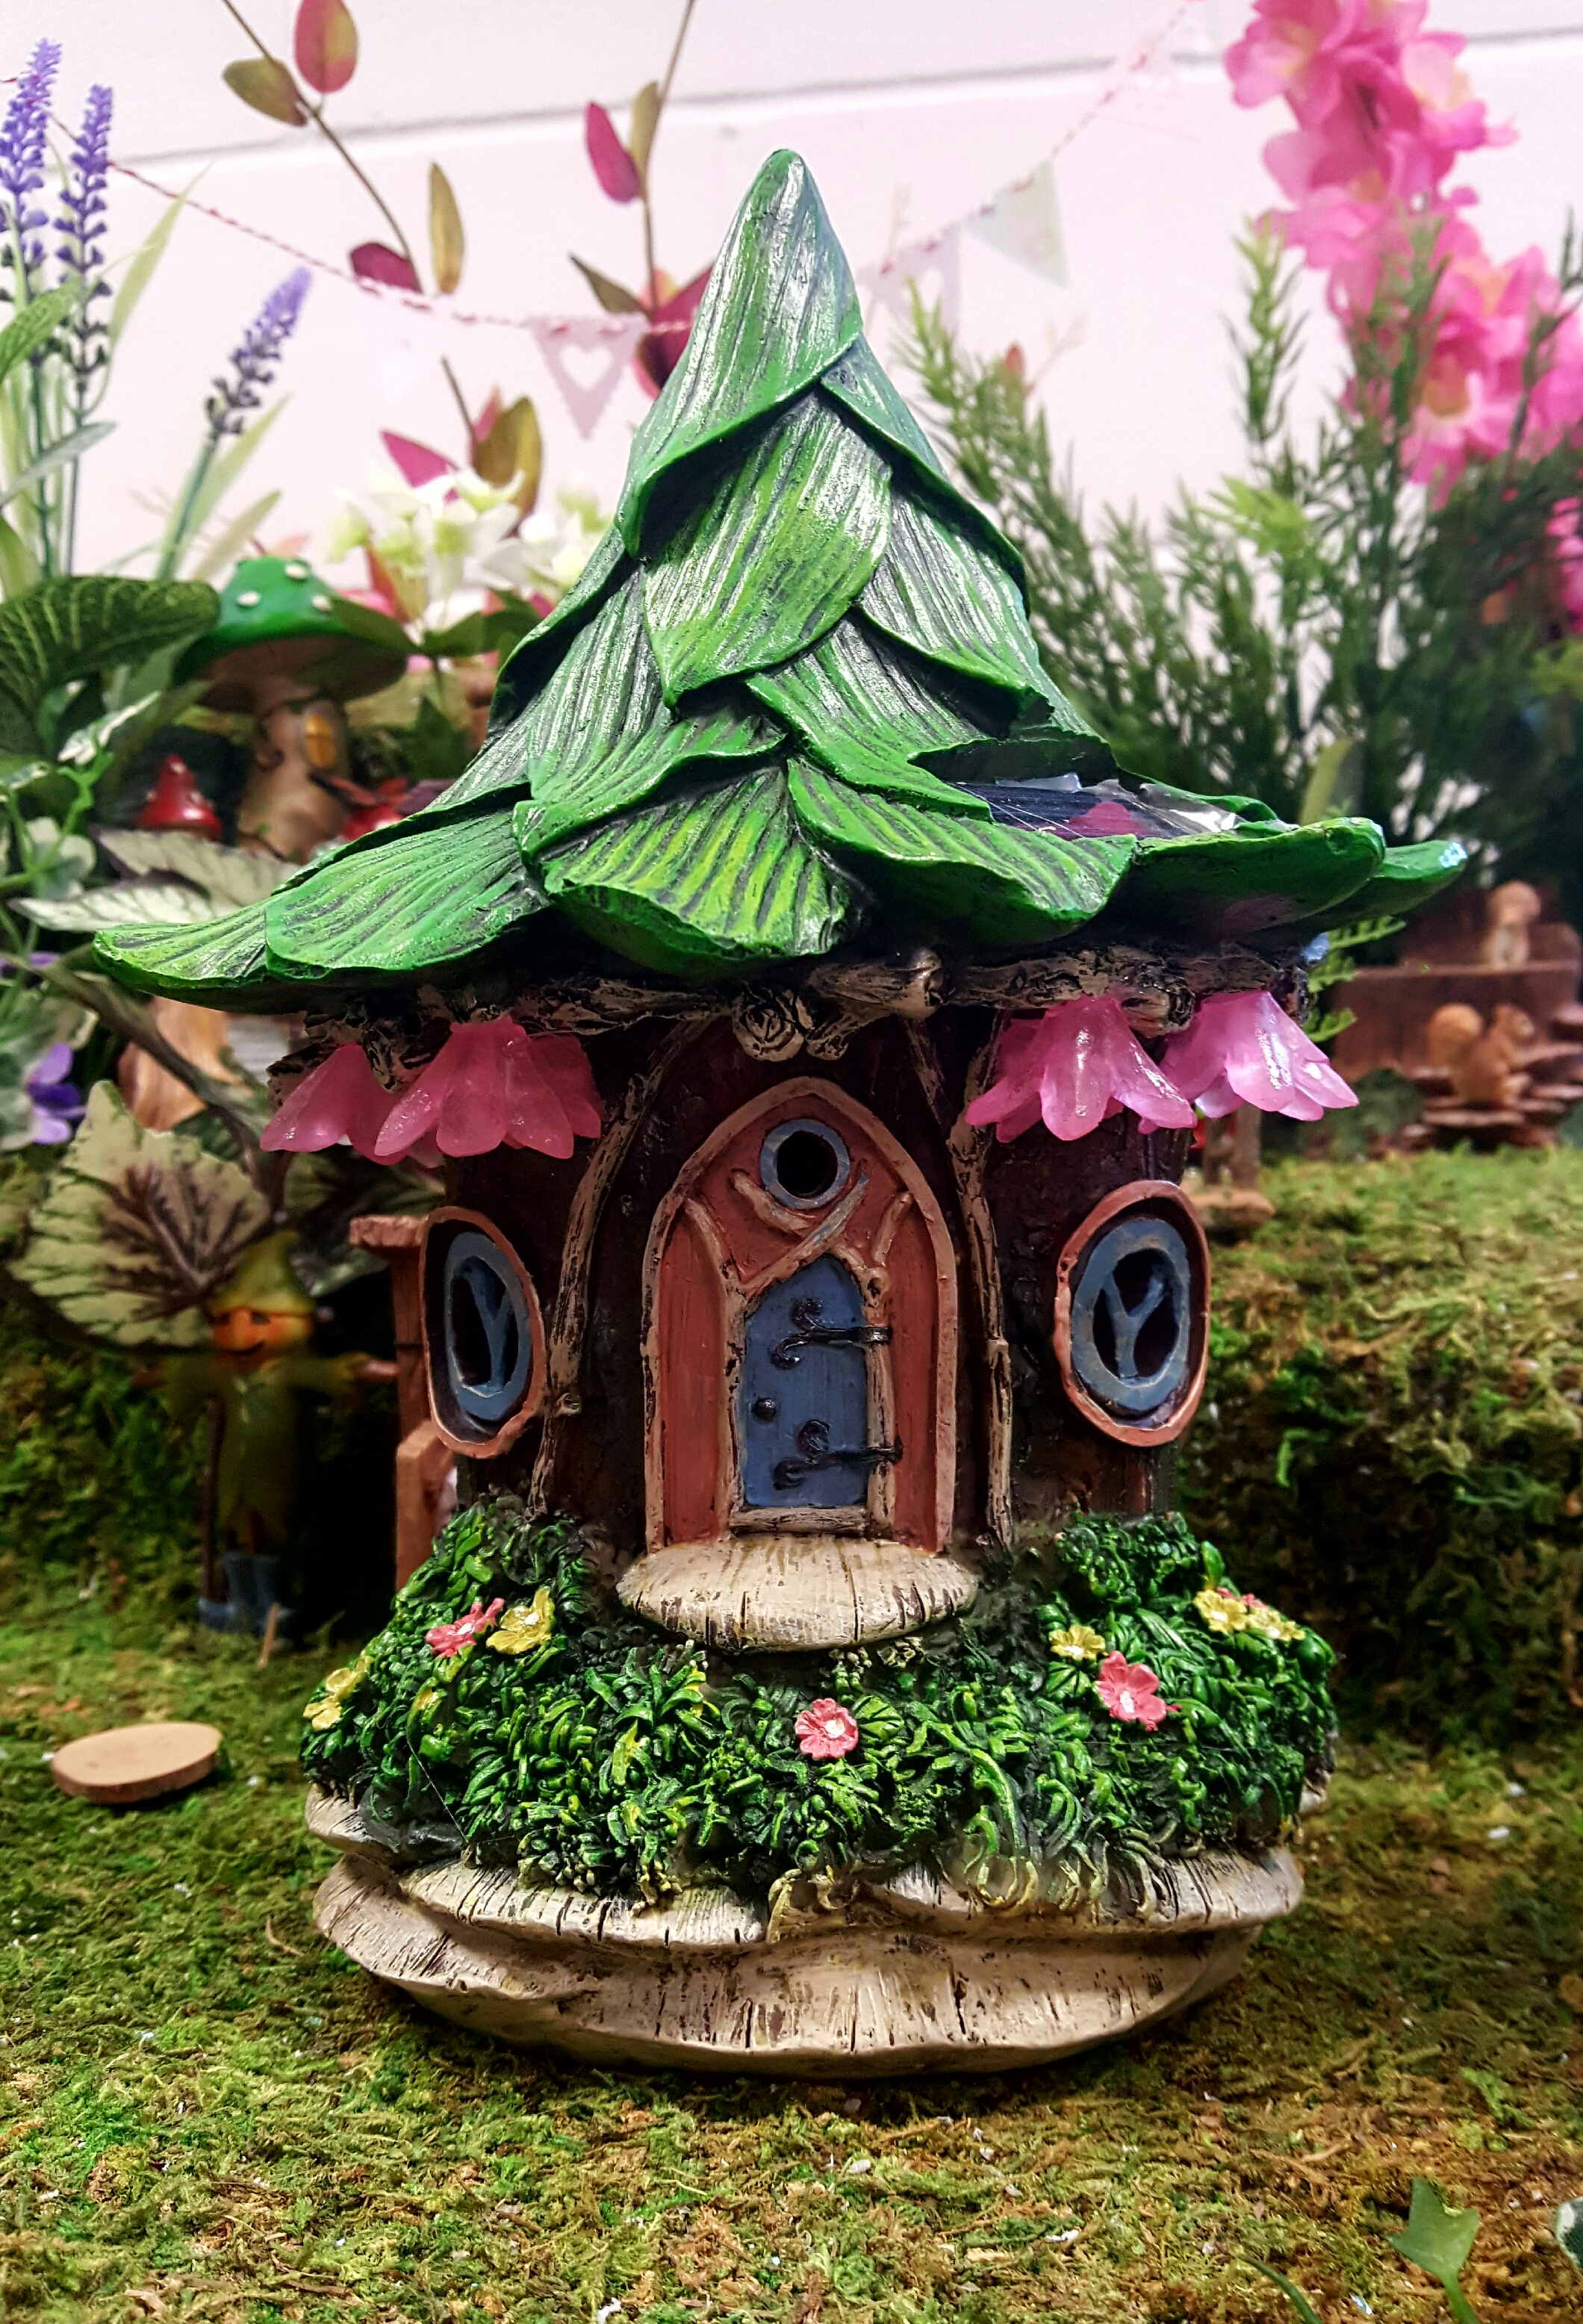 Solar flower fairy house-fairygardensuk.co.uk